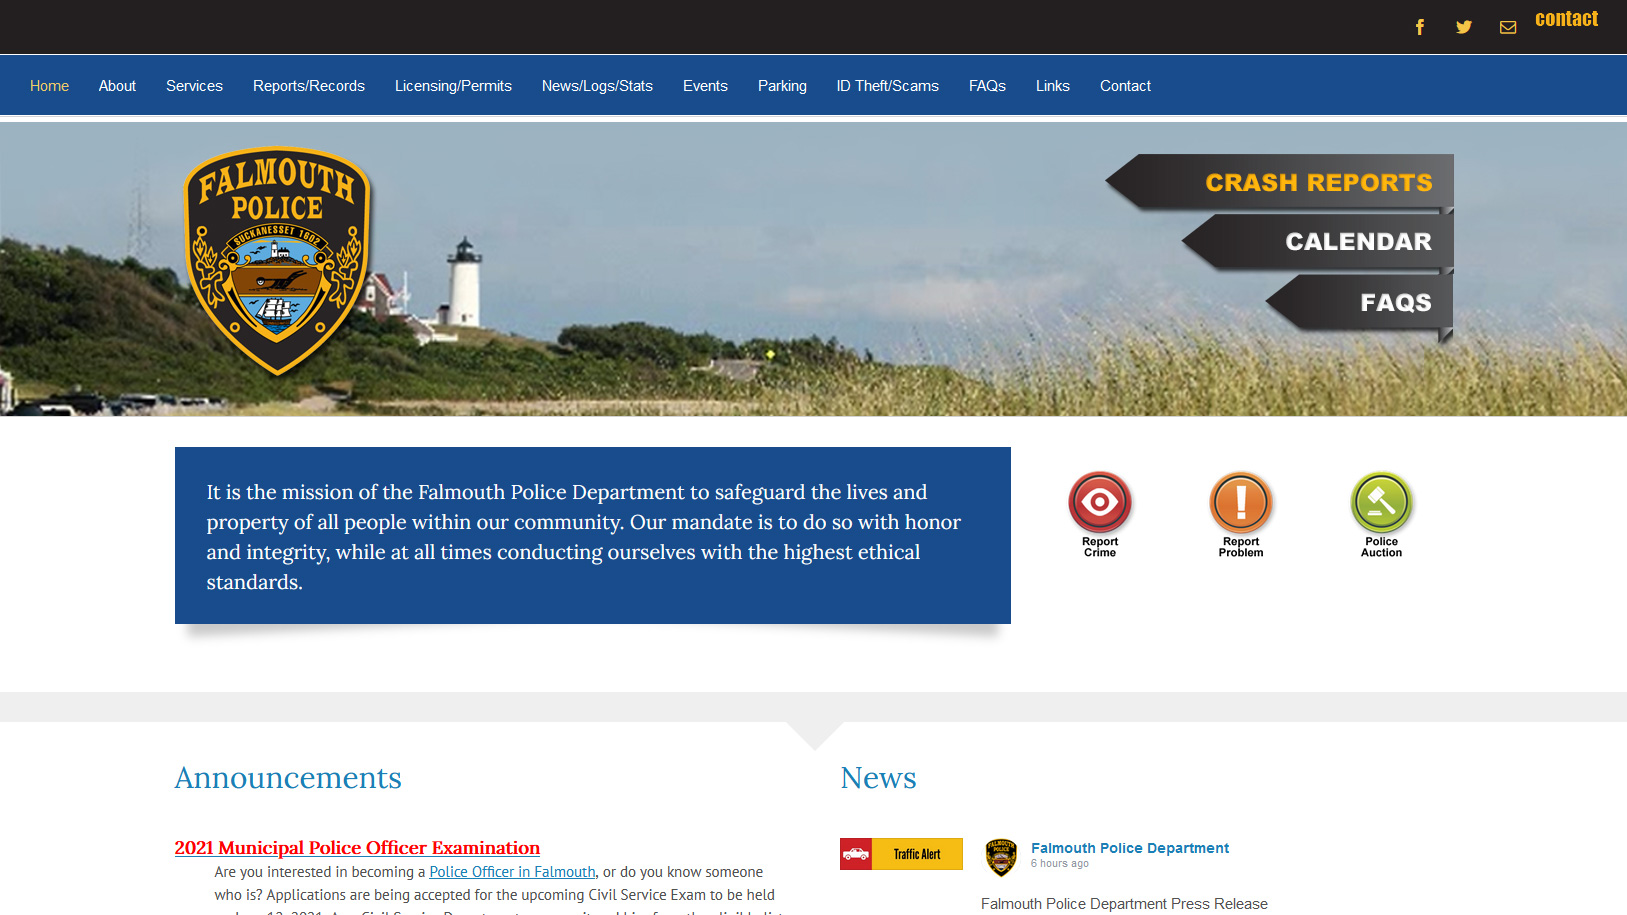 Portfolio Falmouth Police website design